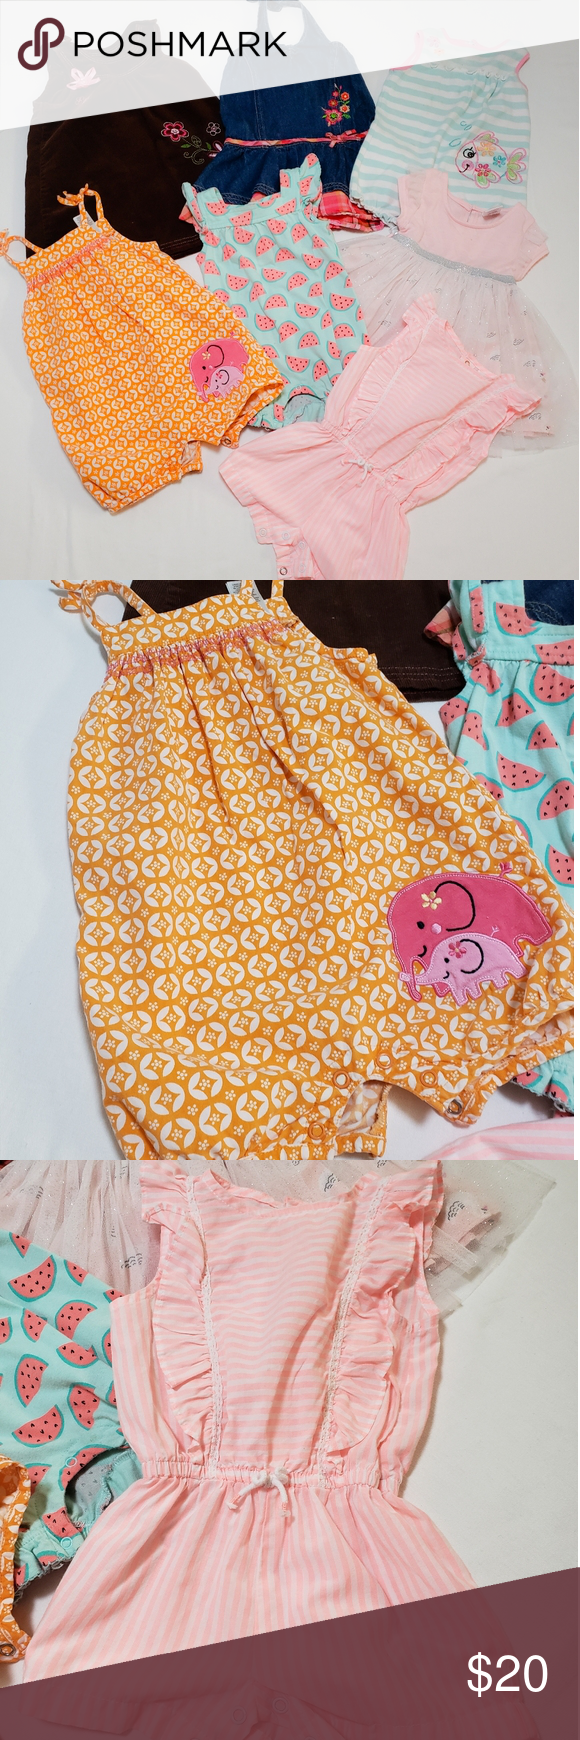 Baby Girl Outfits Size 0-3 to 12 Months. Super cute baby girl dresses and rupers😊 Some are barely used and some has some small stain in the chest part, they can be removed. Brands are Carter's, Jumping bean, Cata & Jack and youngland baby. Carter's Dresses Casual